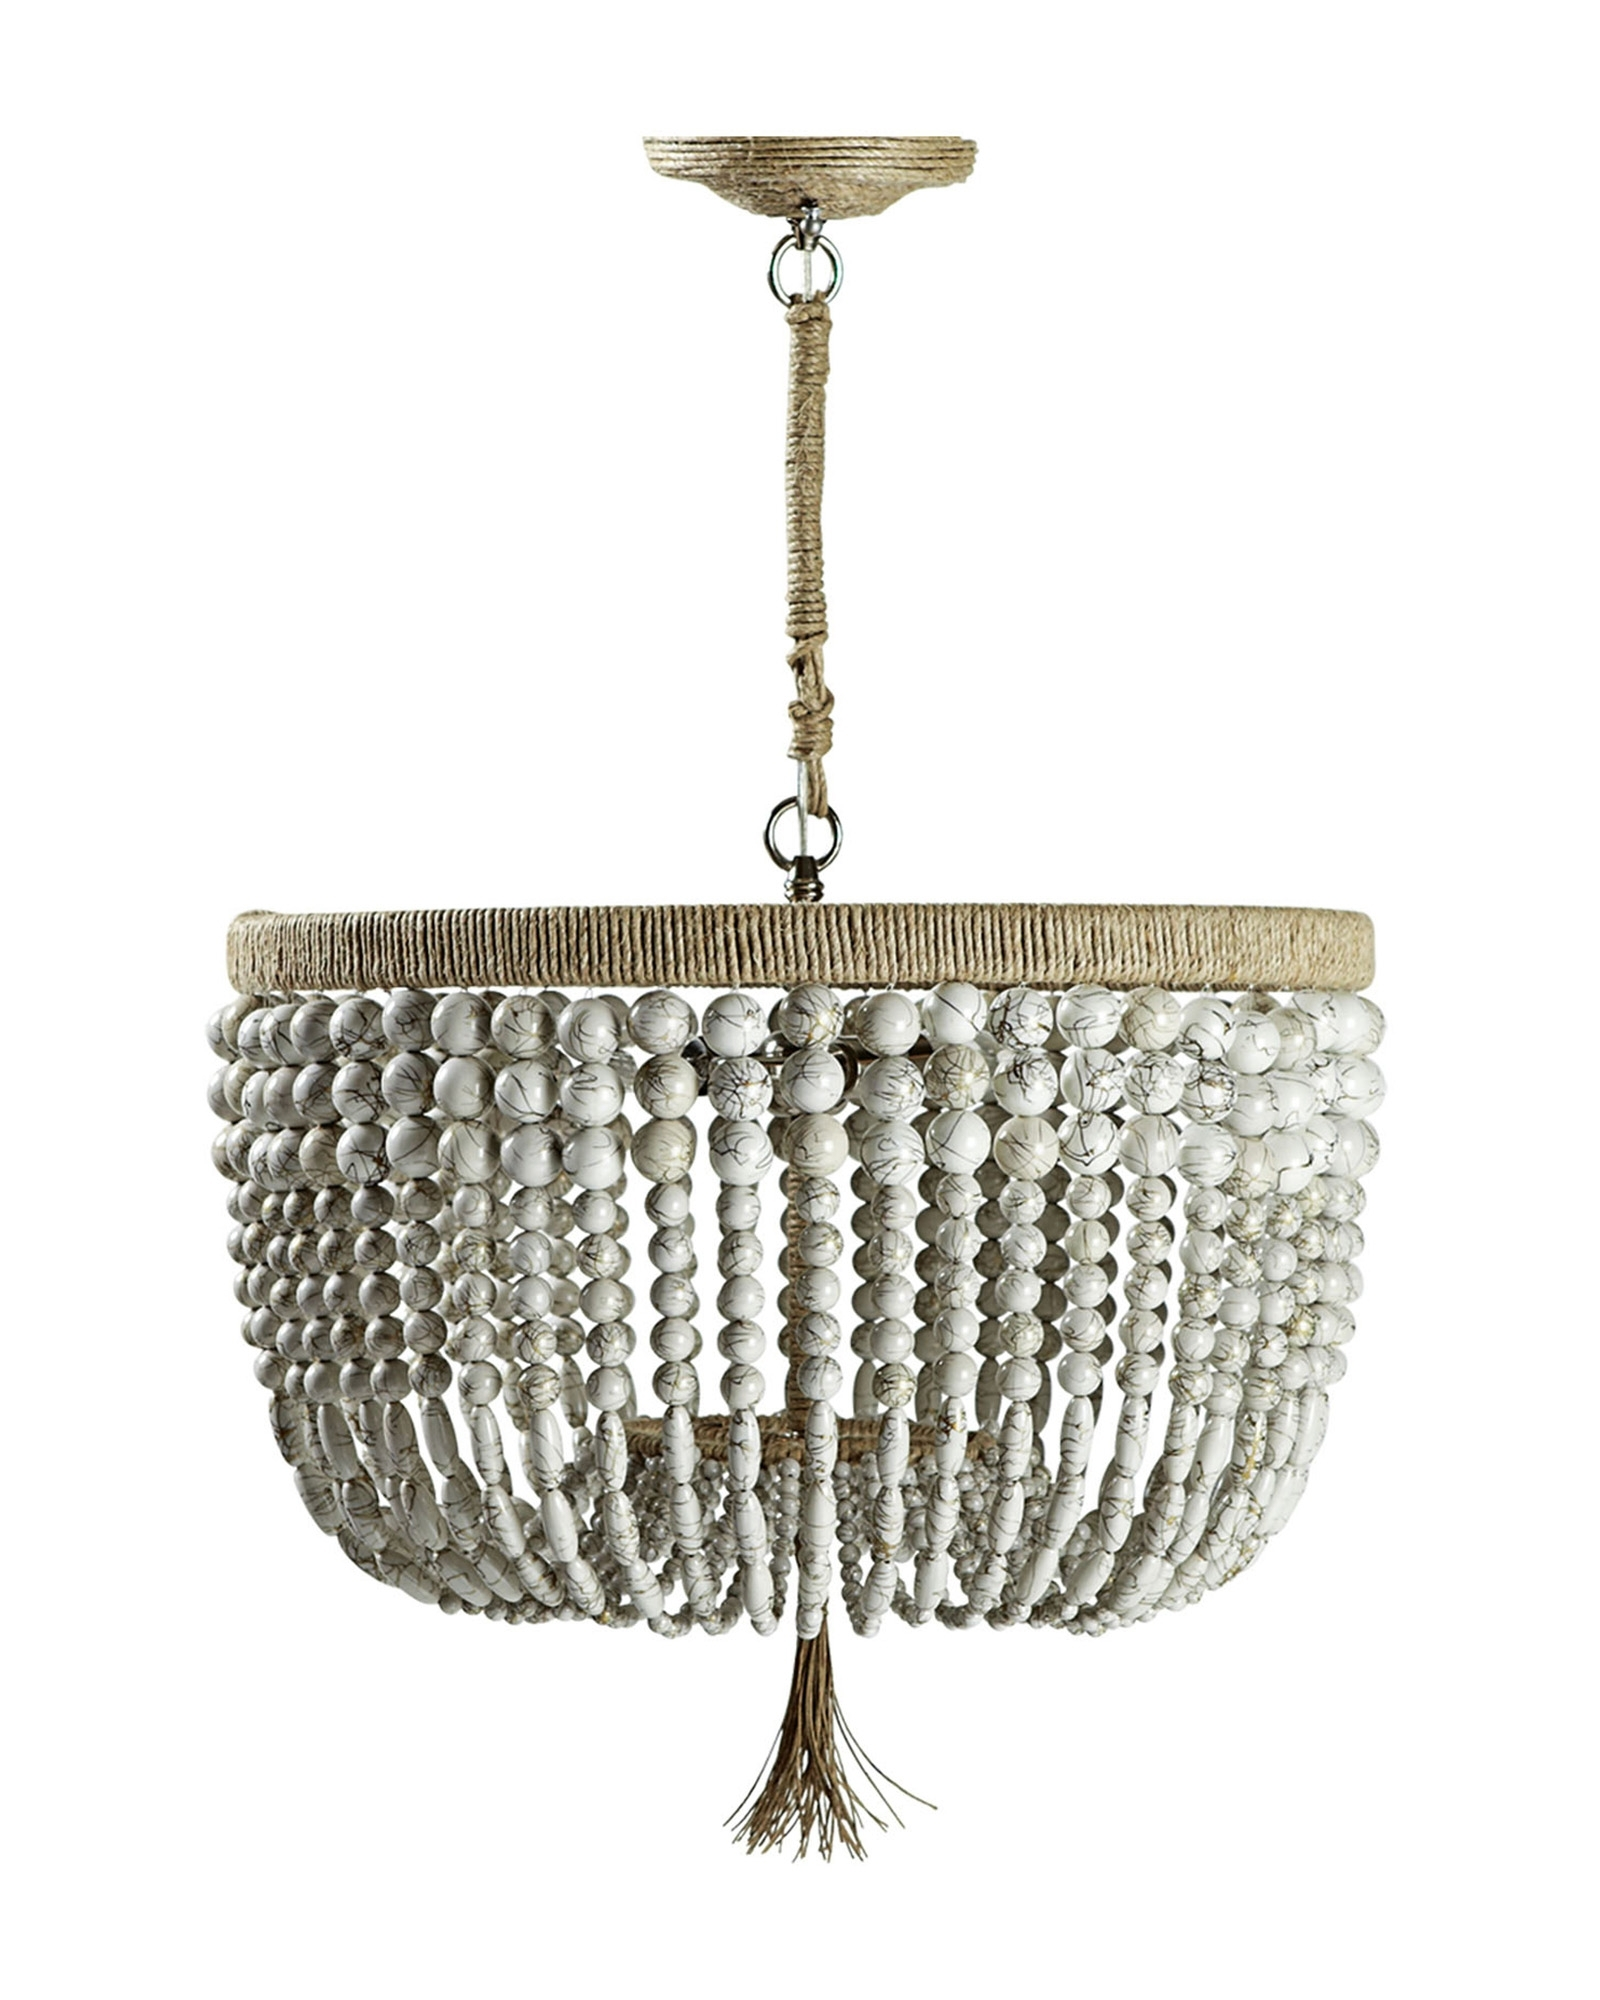 Most Current Malibu Chandelier – Serena & Lily Within Lily Chandeliers (View 2 of 20)